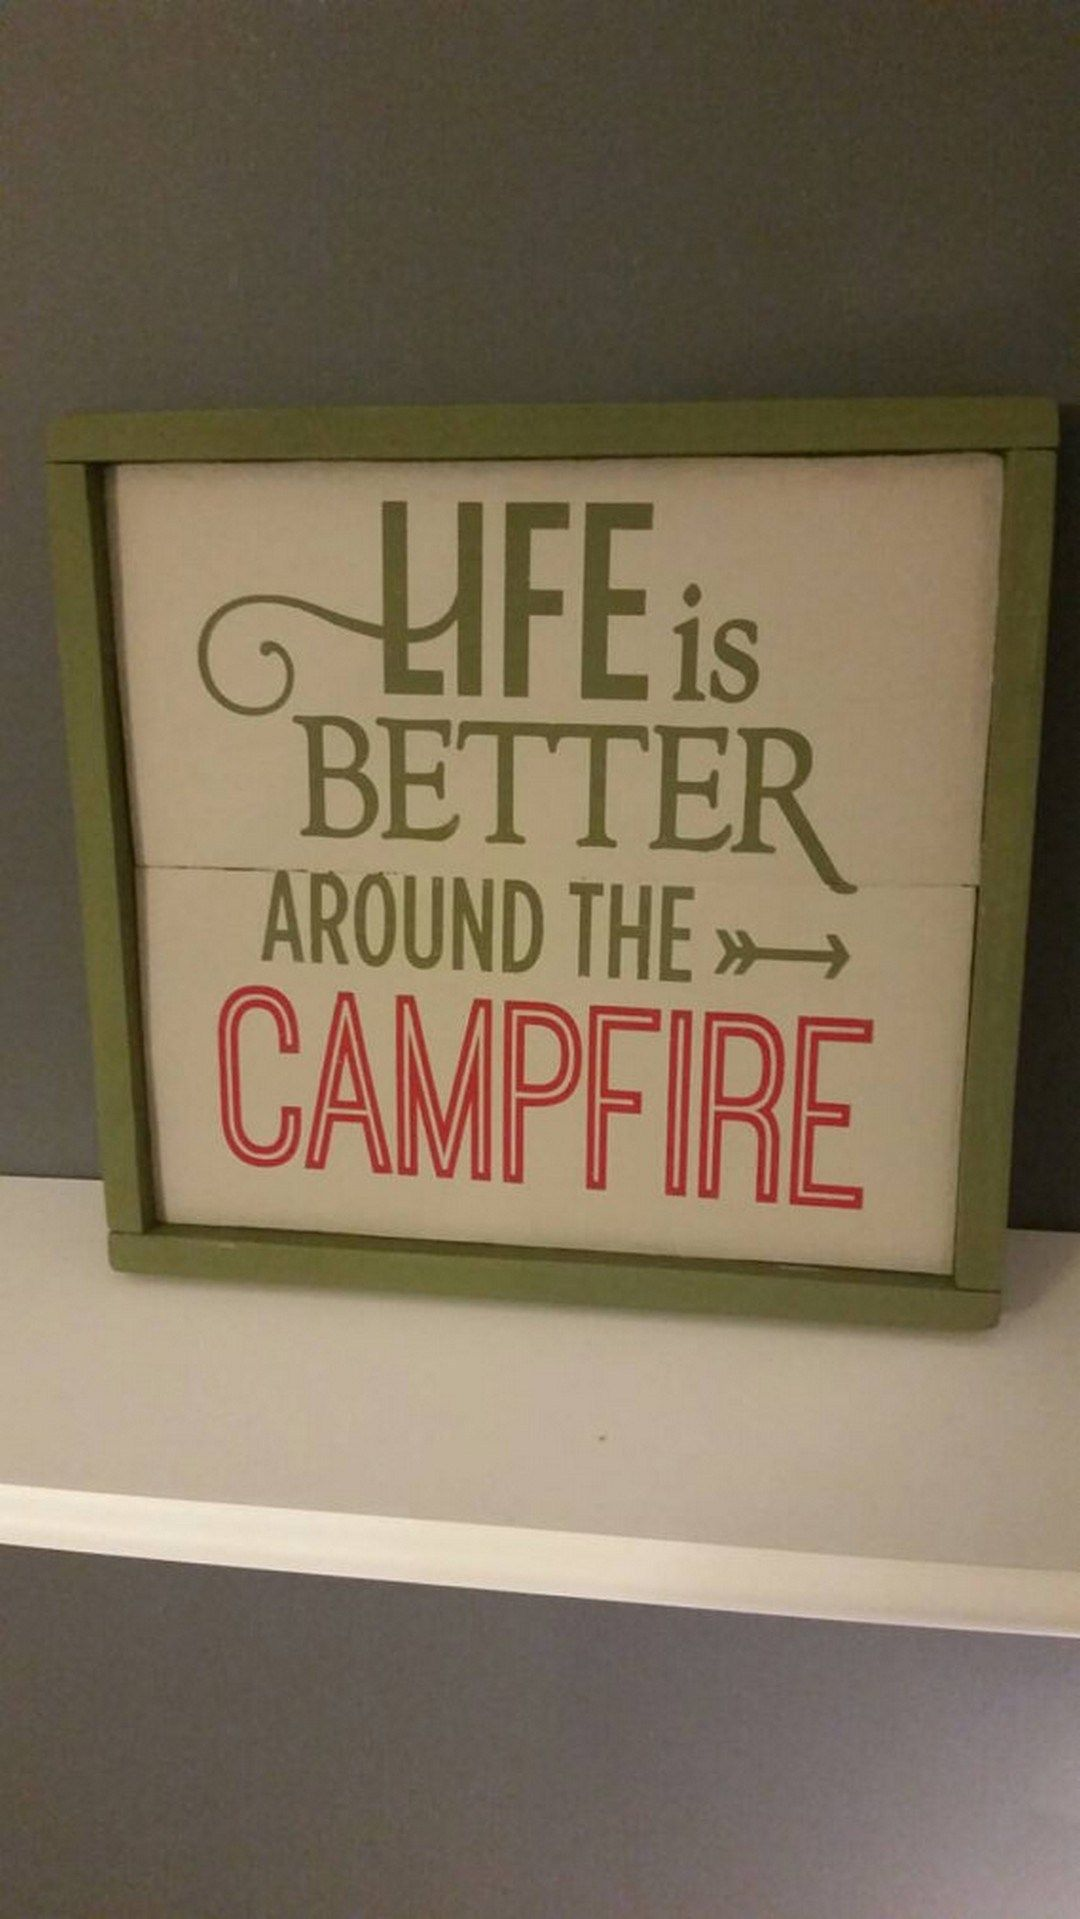 Fun And Crazy Camping Quotes Funny 7 Vanchitecture Camping Quotes Funny Camping Signs Camping Quotes